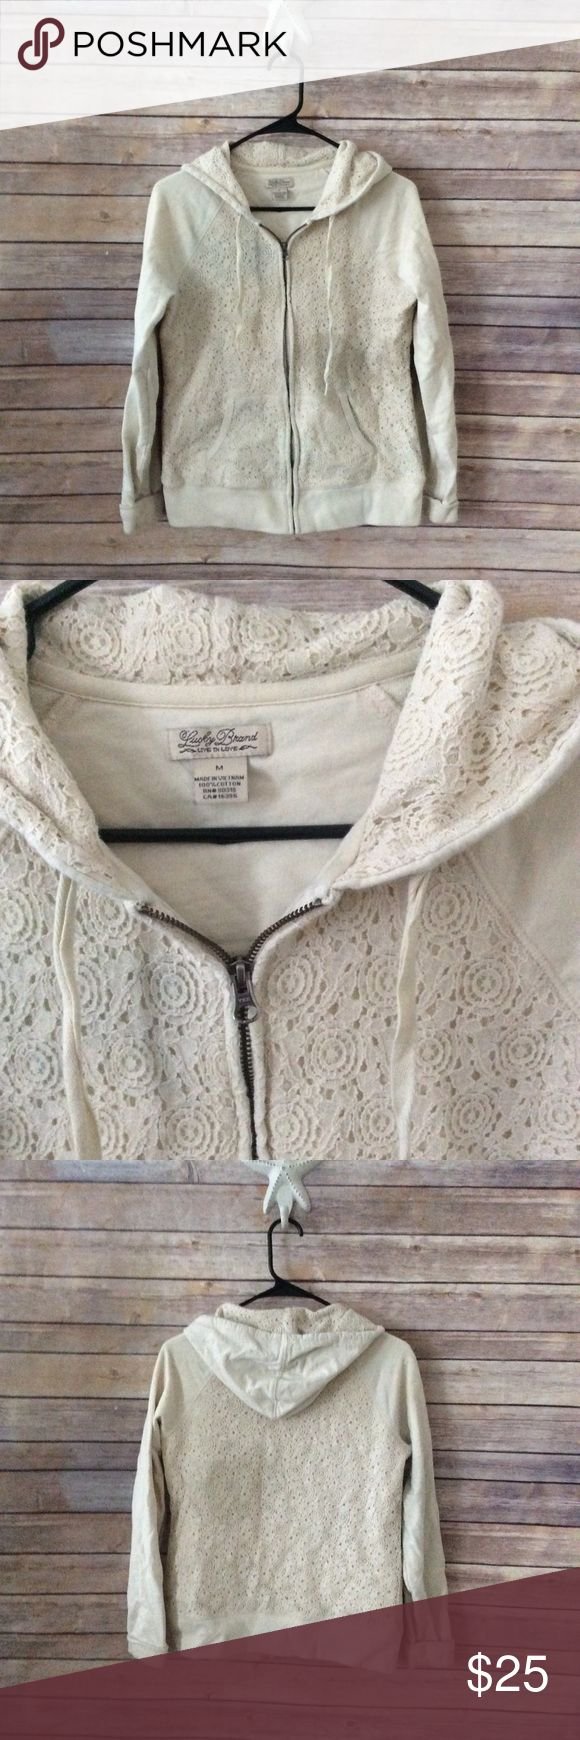 Lucky Brand Cream Crochet Zip Hoodie sz M Great condition, cute and casual zip-up hoodie. ❌no trades, holds, or lowball offers. ✅Clean and smoke free home, quick shipping, bundle discount, always! 🎁Free gift with $15+ bundle. Lucky Brand Tops Sweatshirts & Hoodies